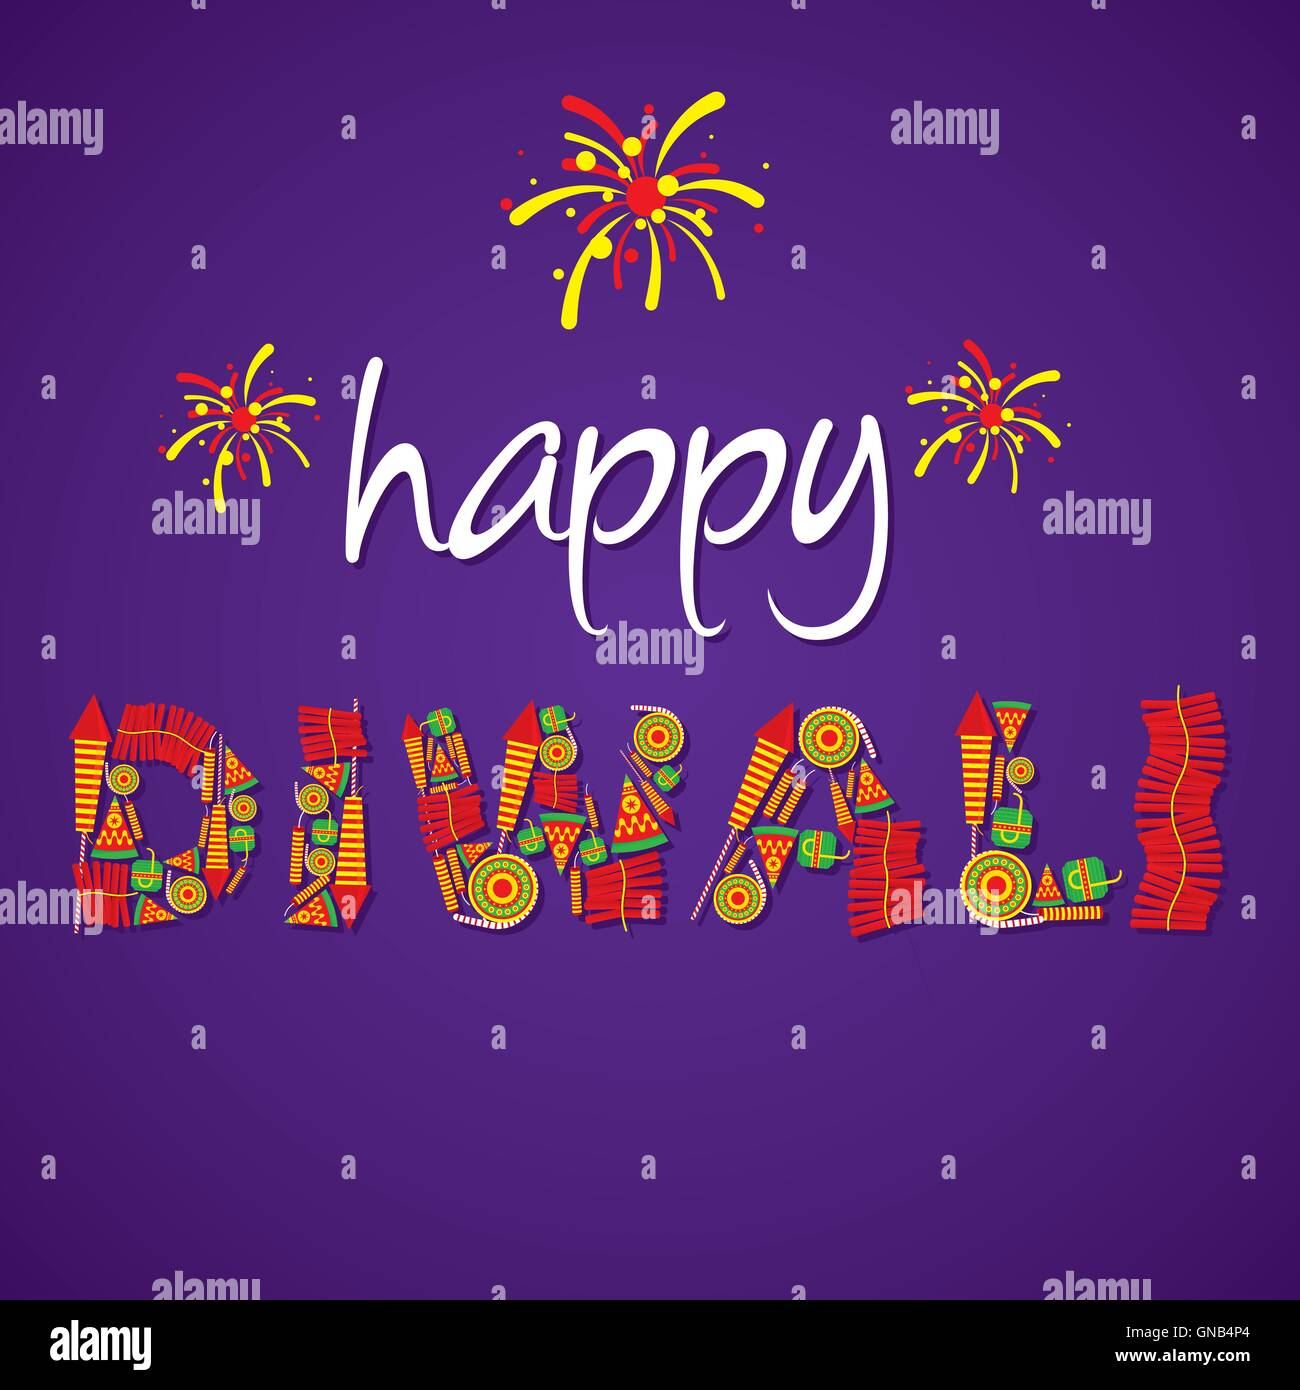 Editable diwali greetings gallery greetings card design simple creative happy diwali greeting design by cracker vector stock vector m4hsunfo